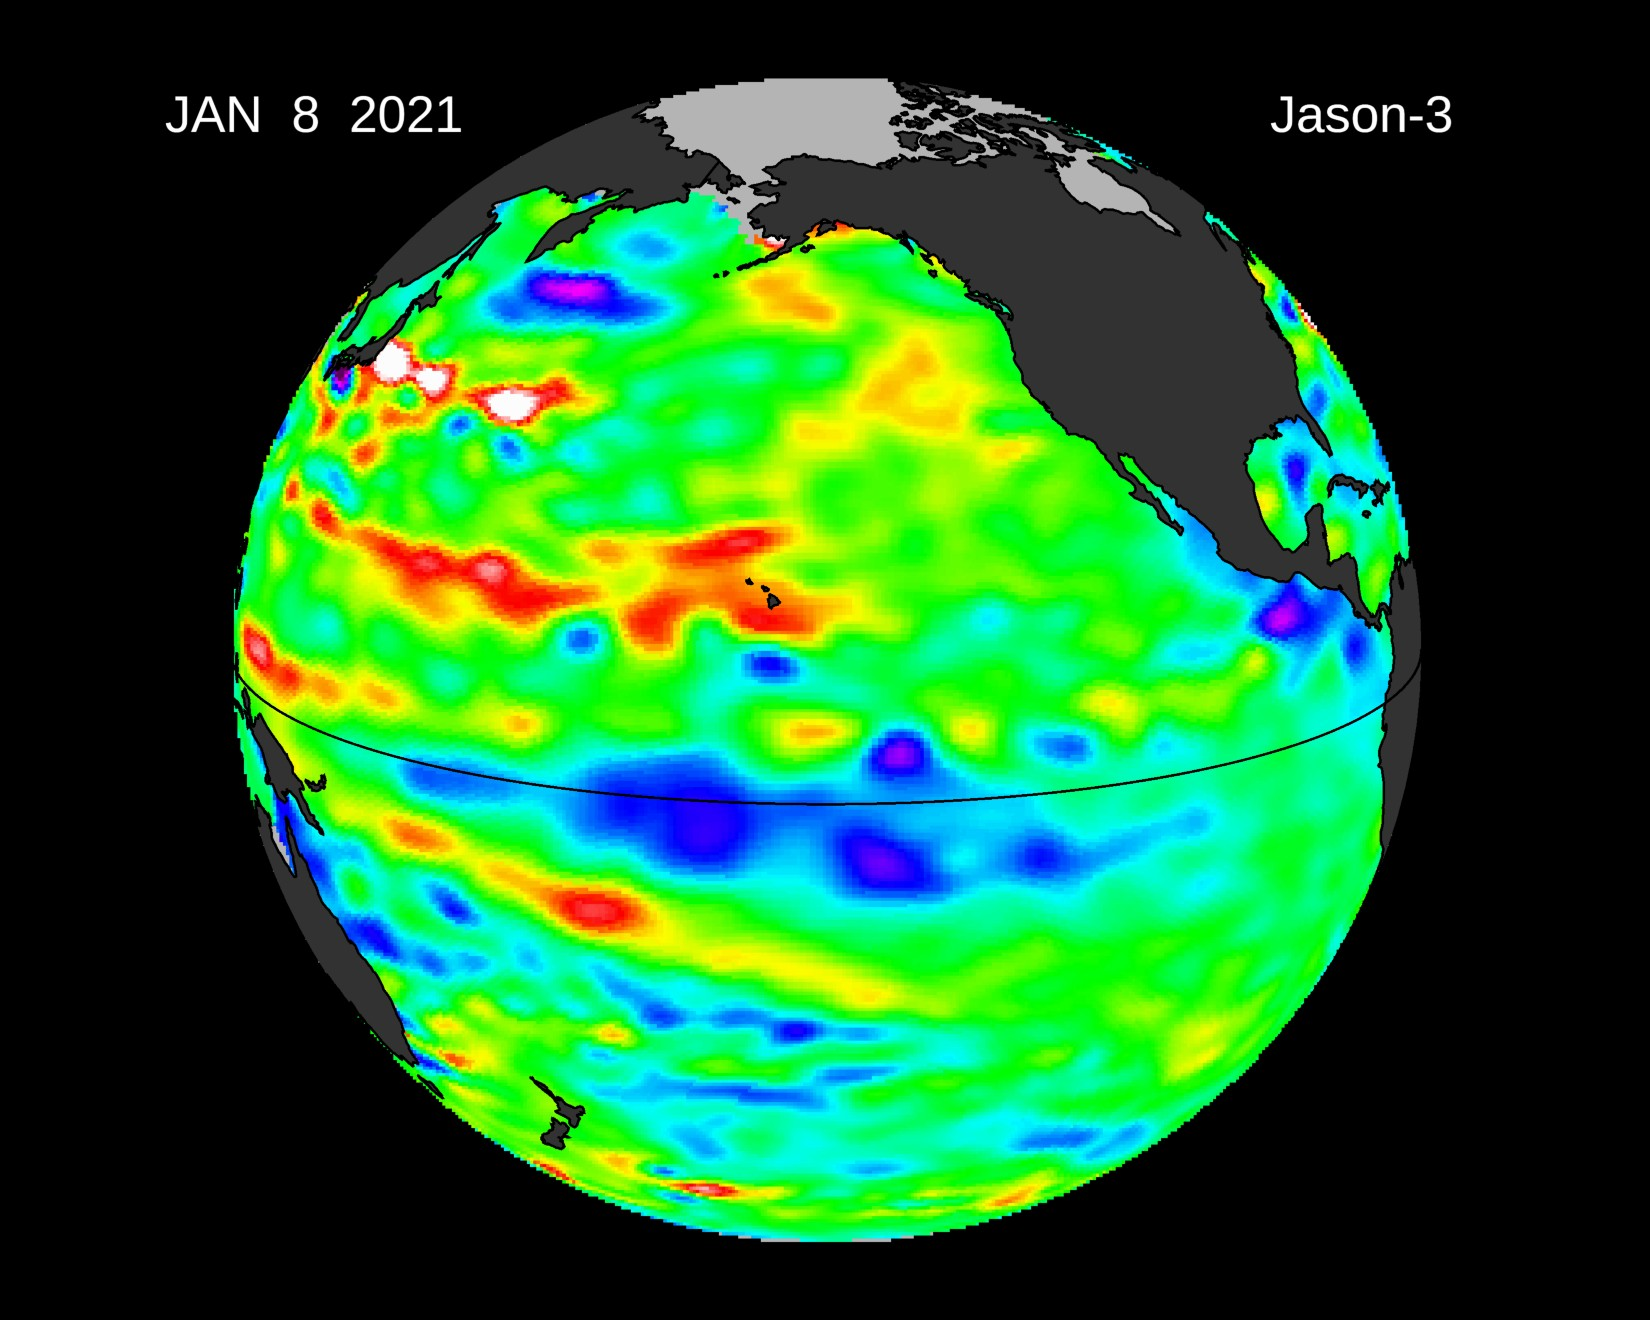 Stereographic image depicting el nino data